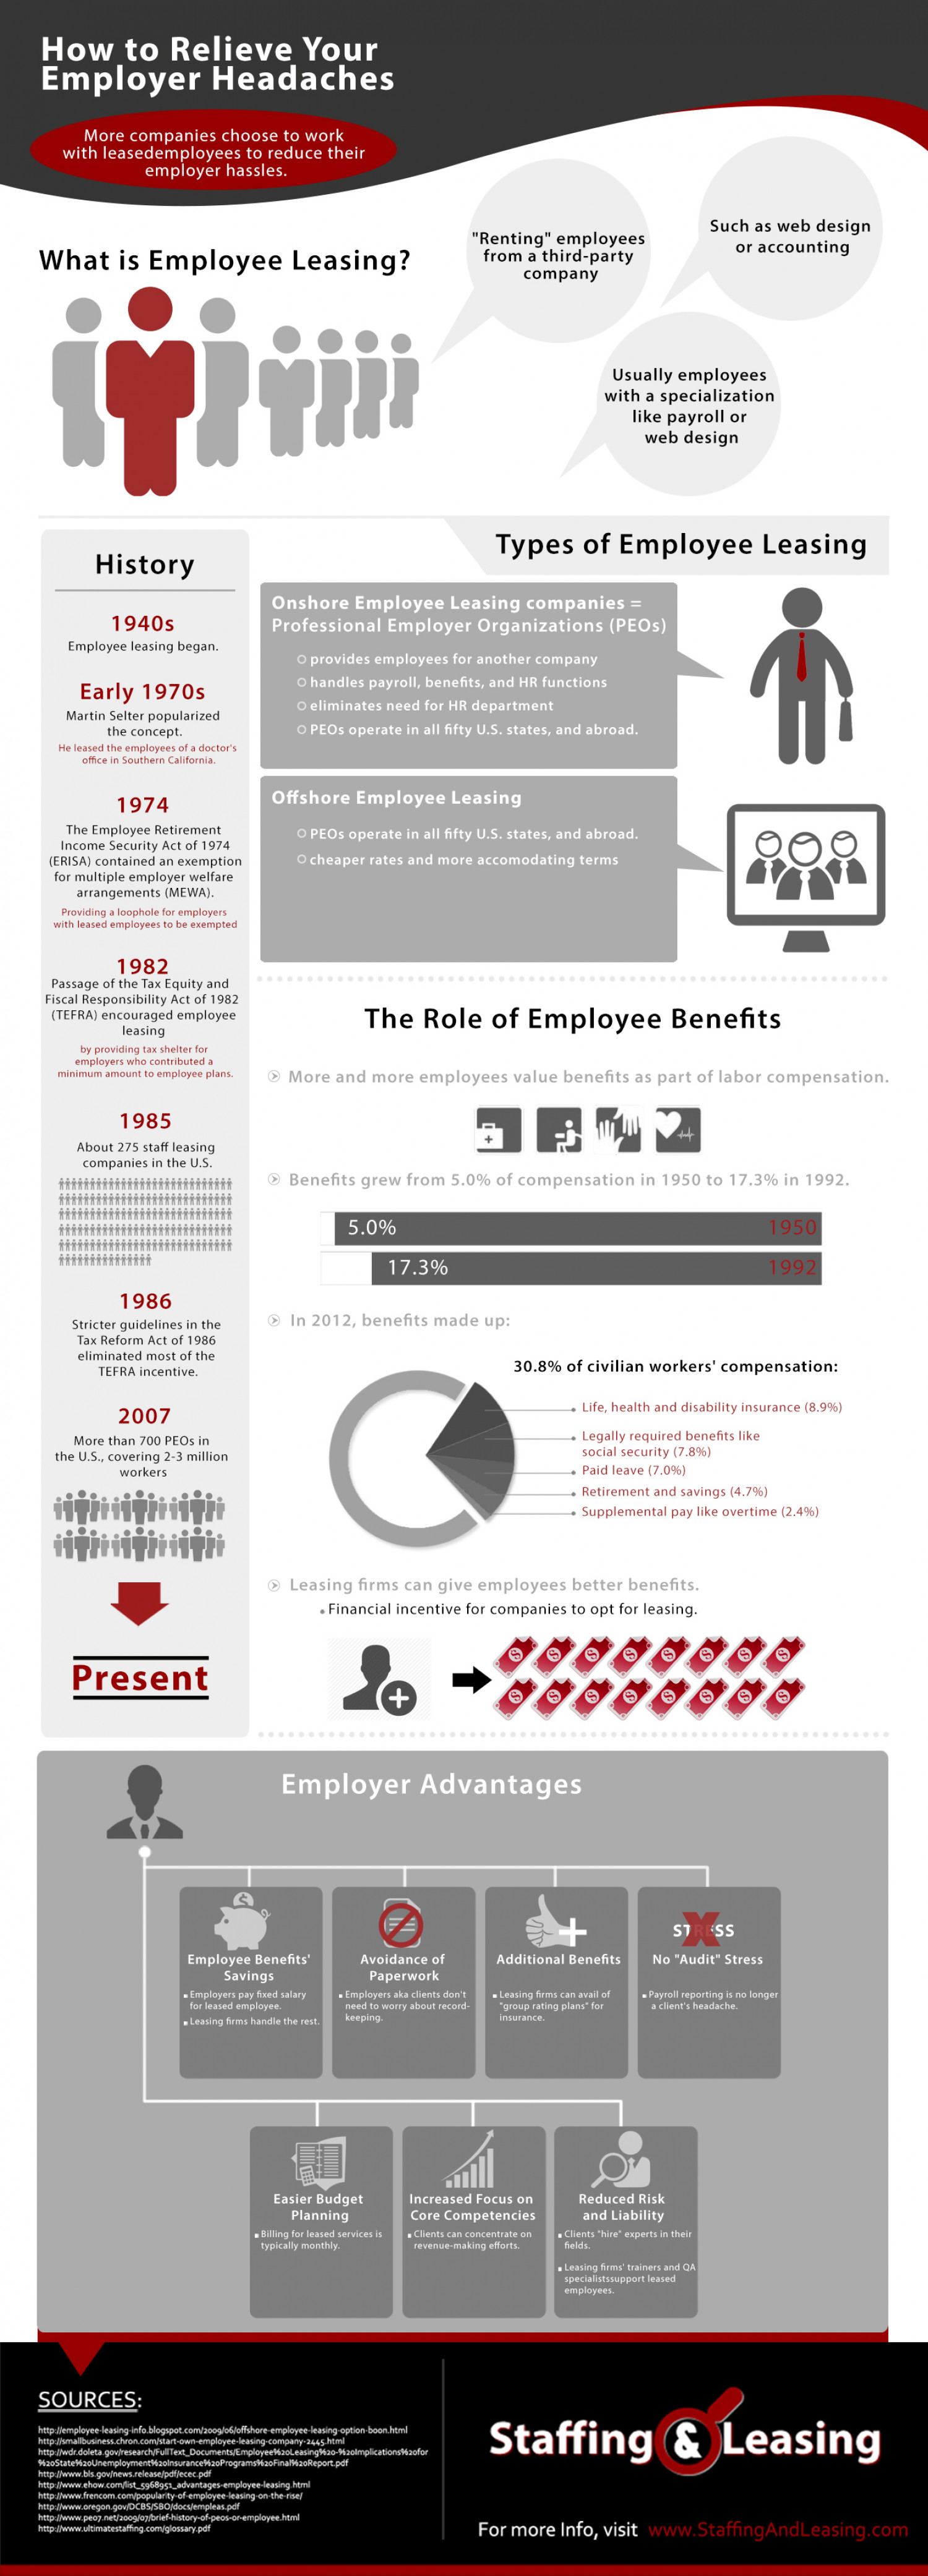 How to Relieve Your Employer Headaches Infographic